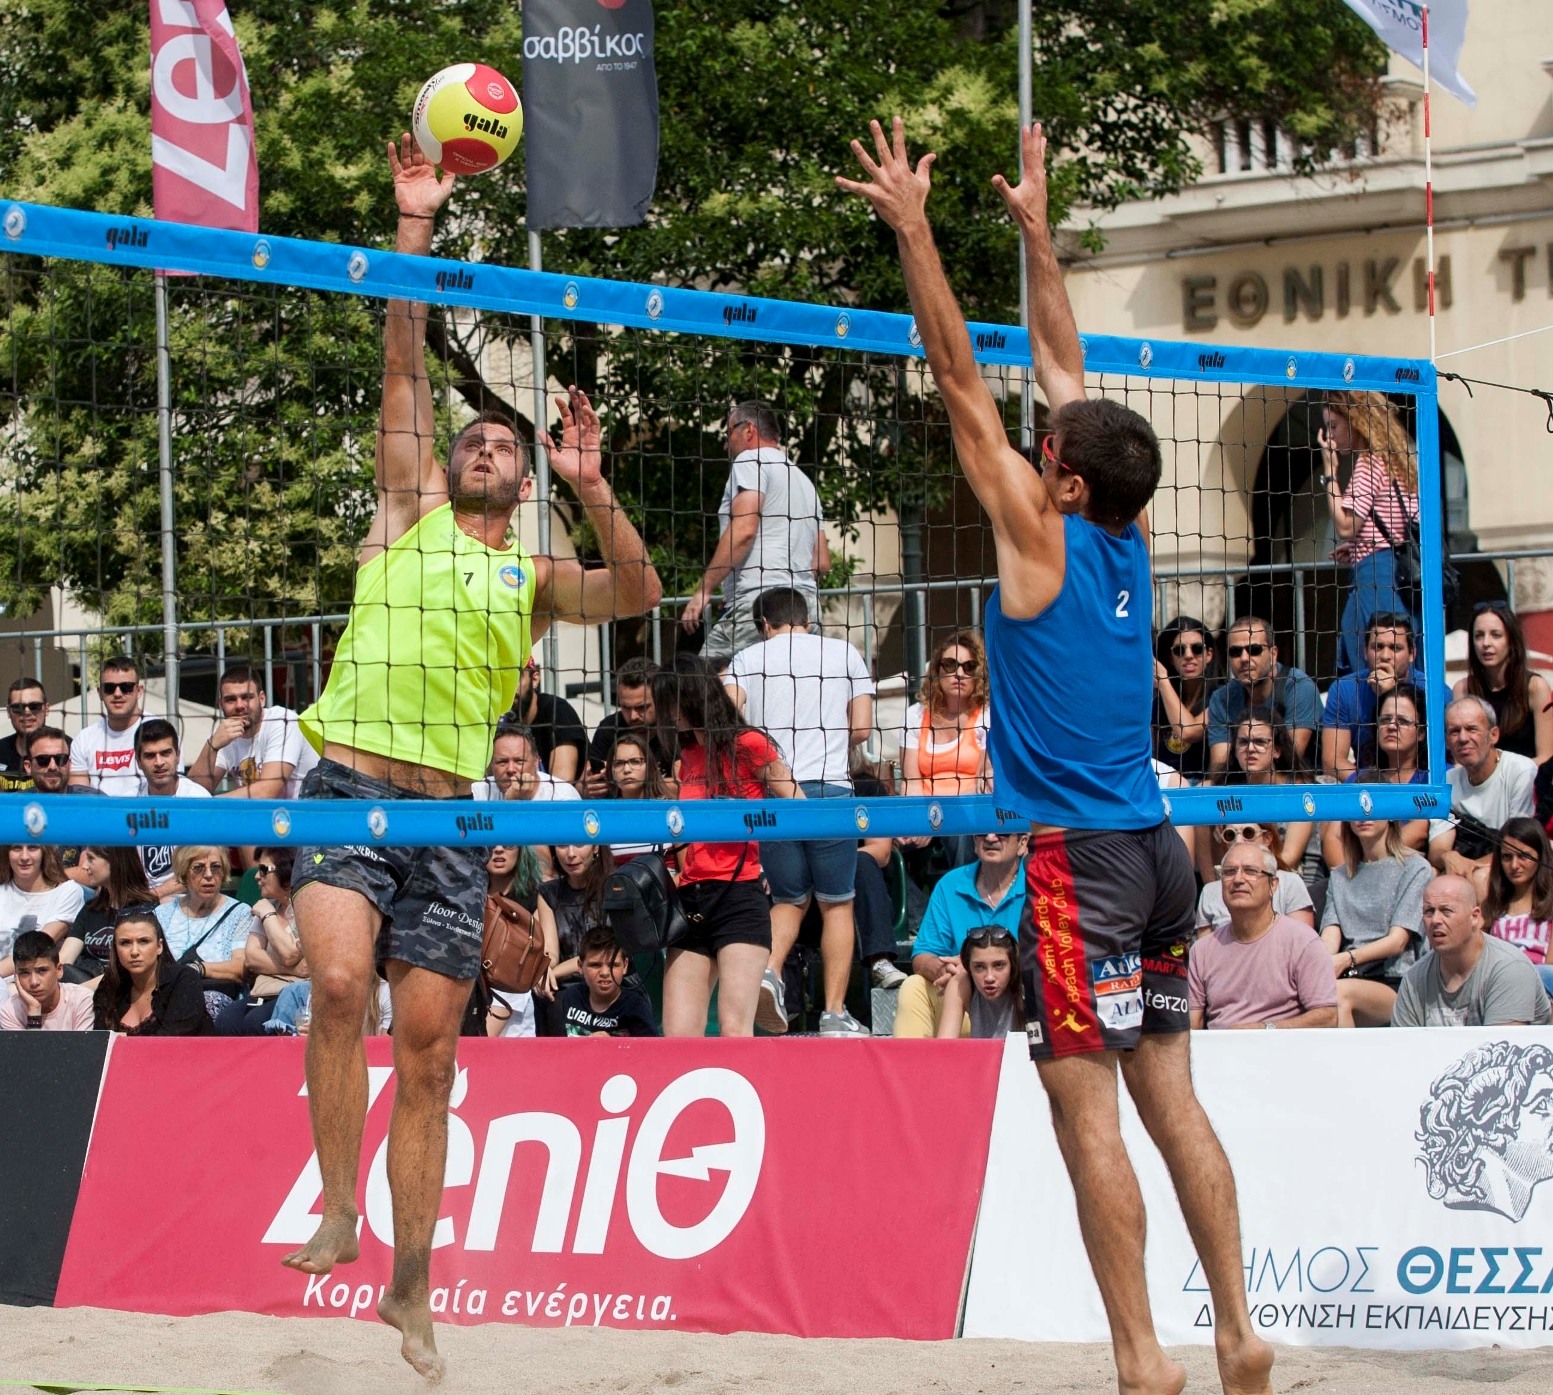 thessaloniki_masters_beach_volley_2019_image_2.jpg